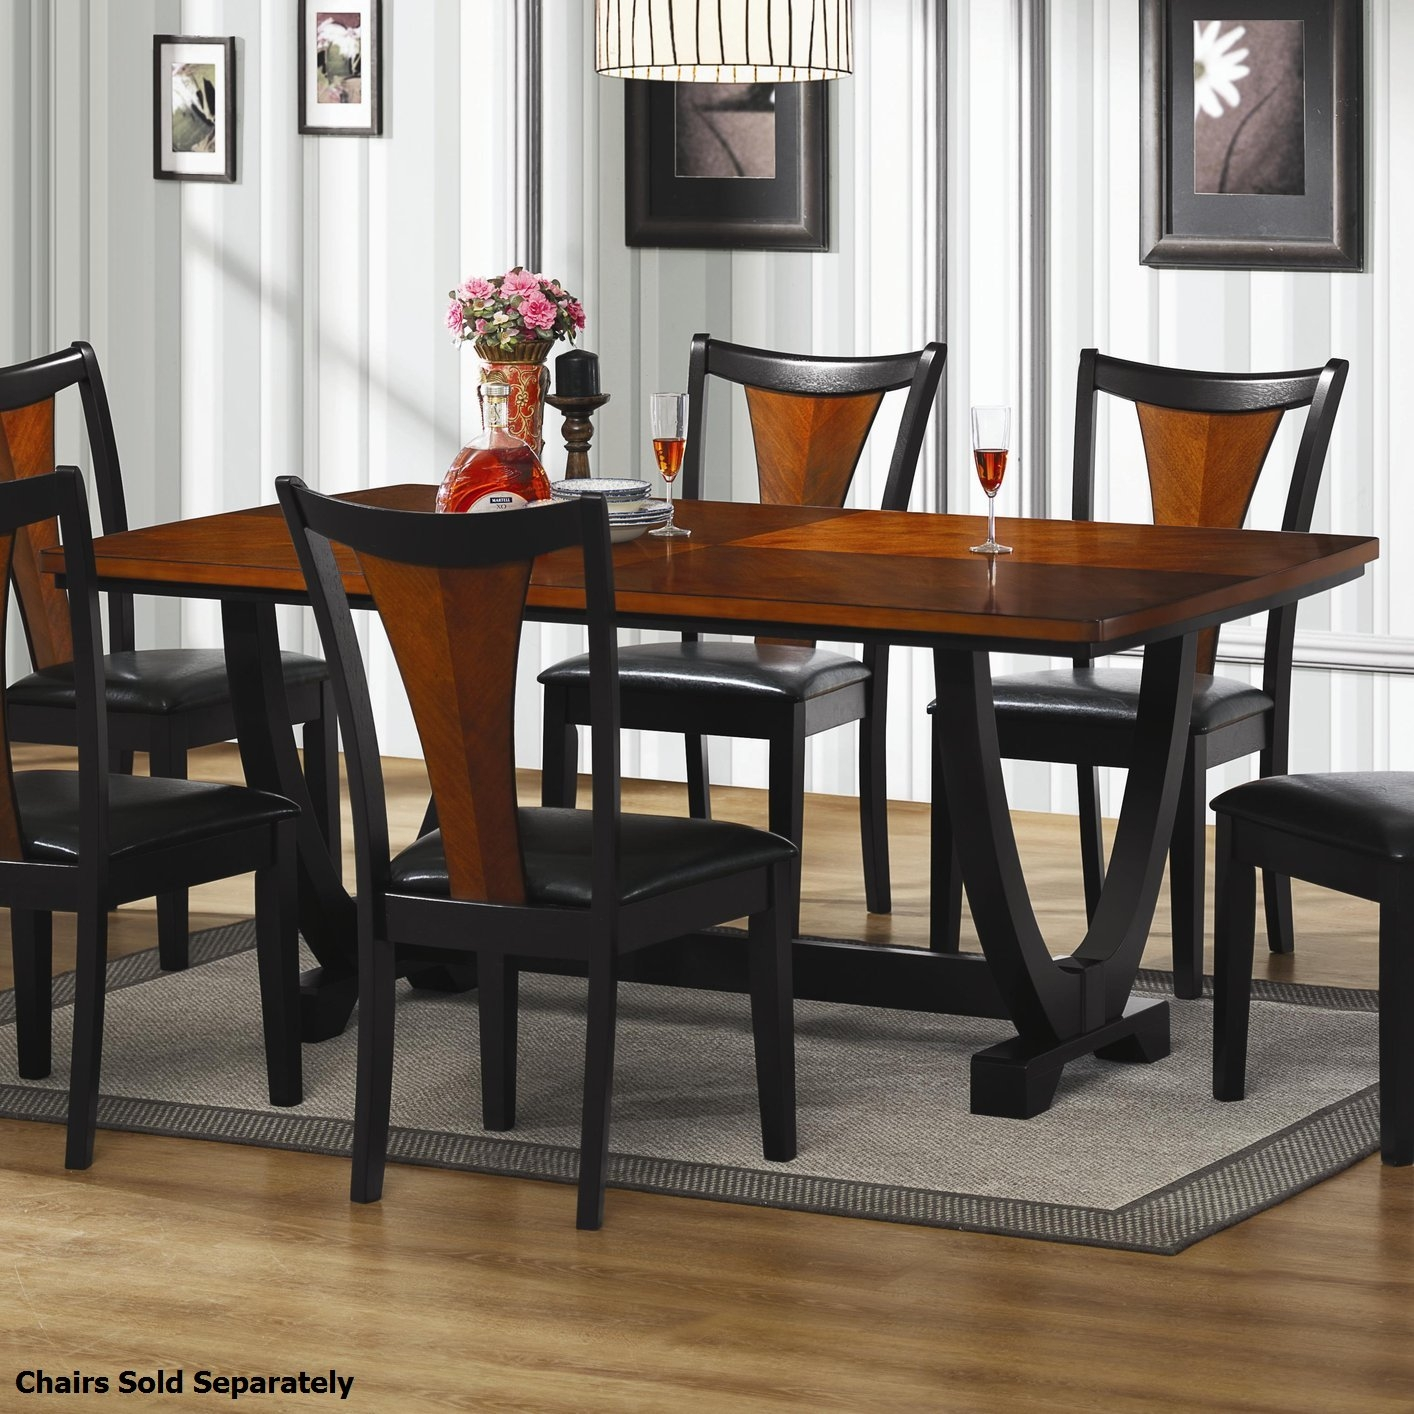 Dining Table With Sofa Chairs Lpuite For Dining Sofa Chairs (Image 8 of 15)